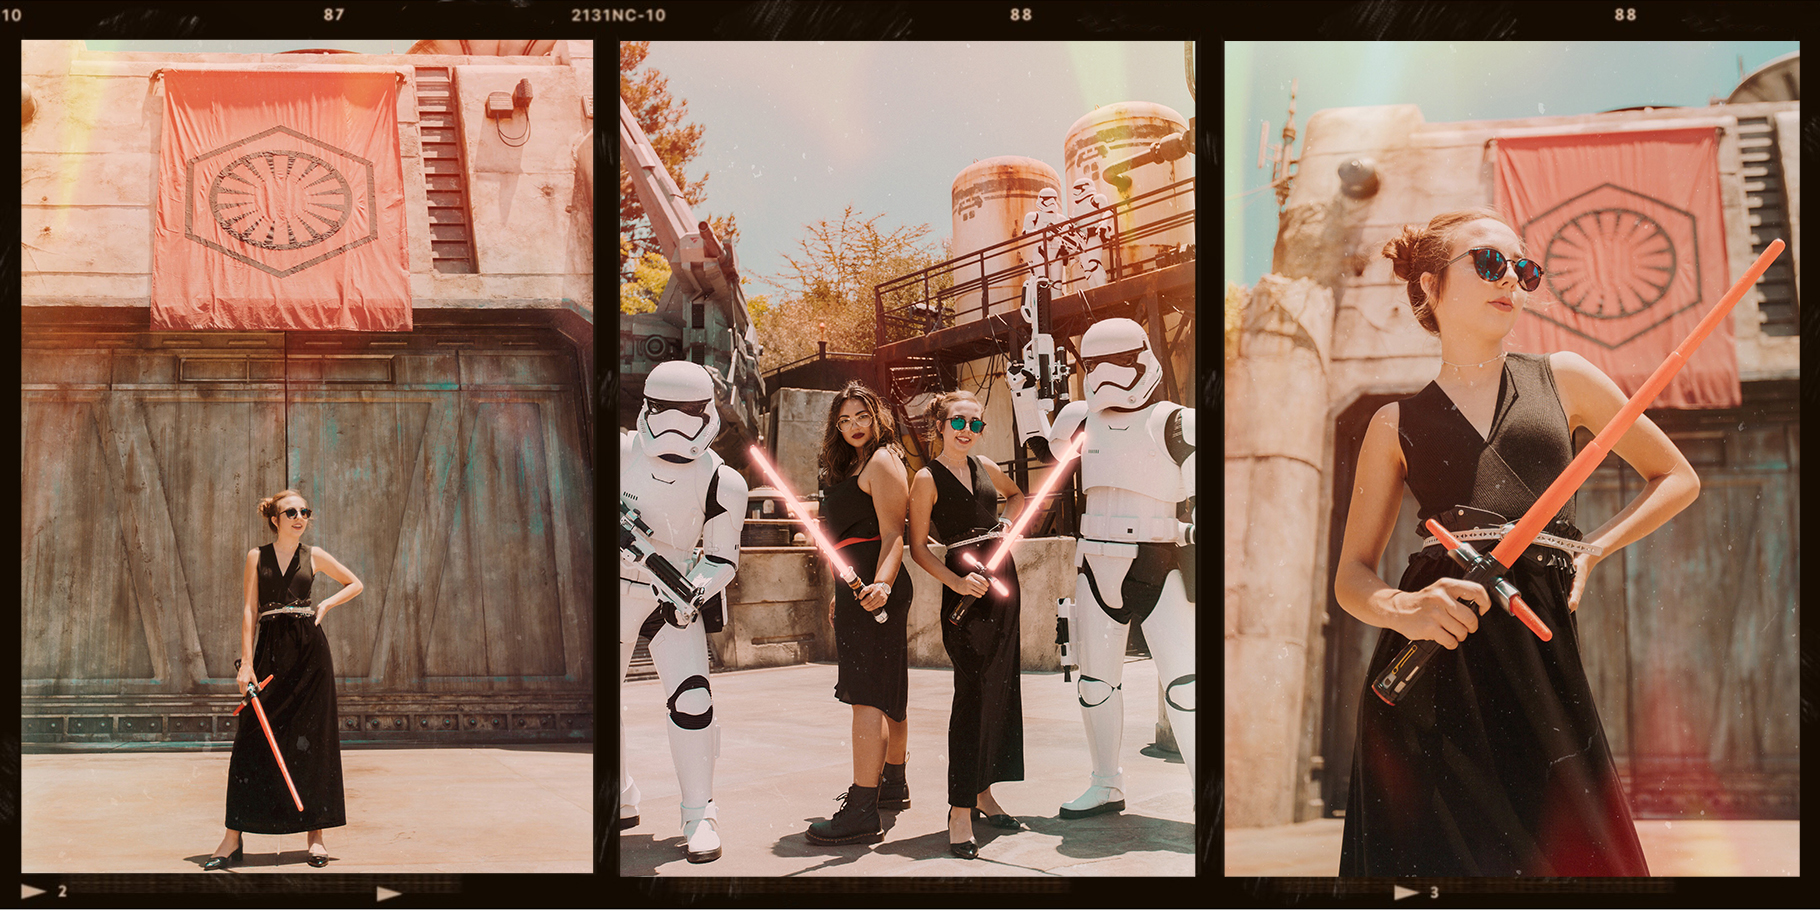 STAR WARS GALAXY'S EDGE 2